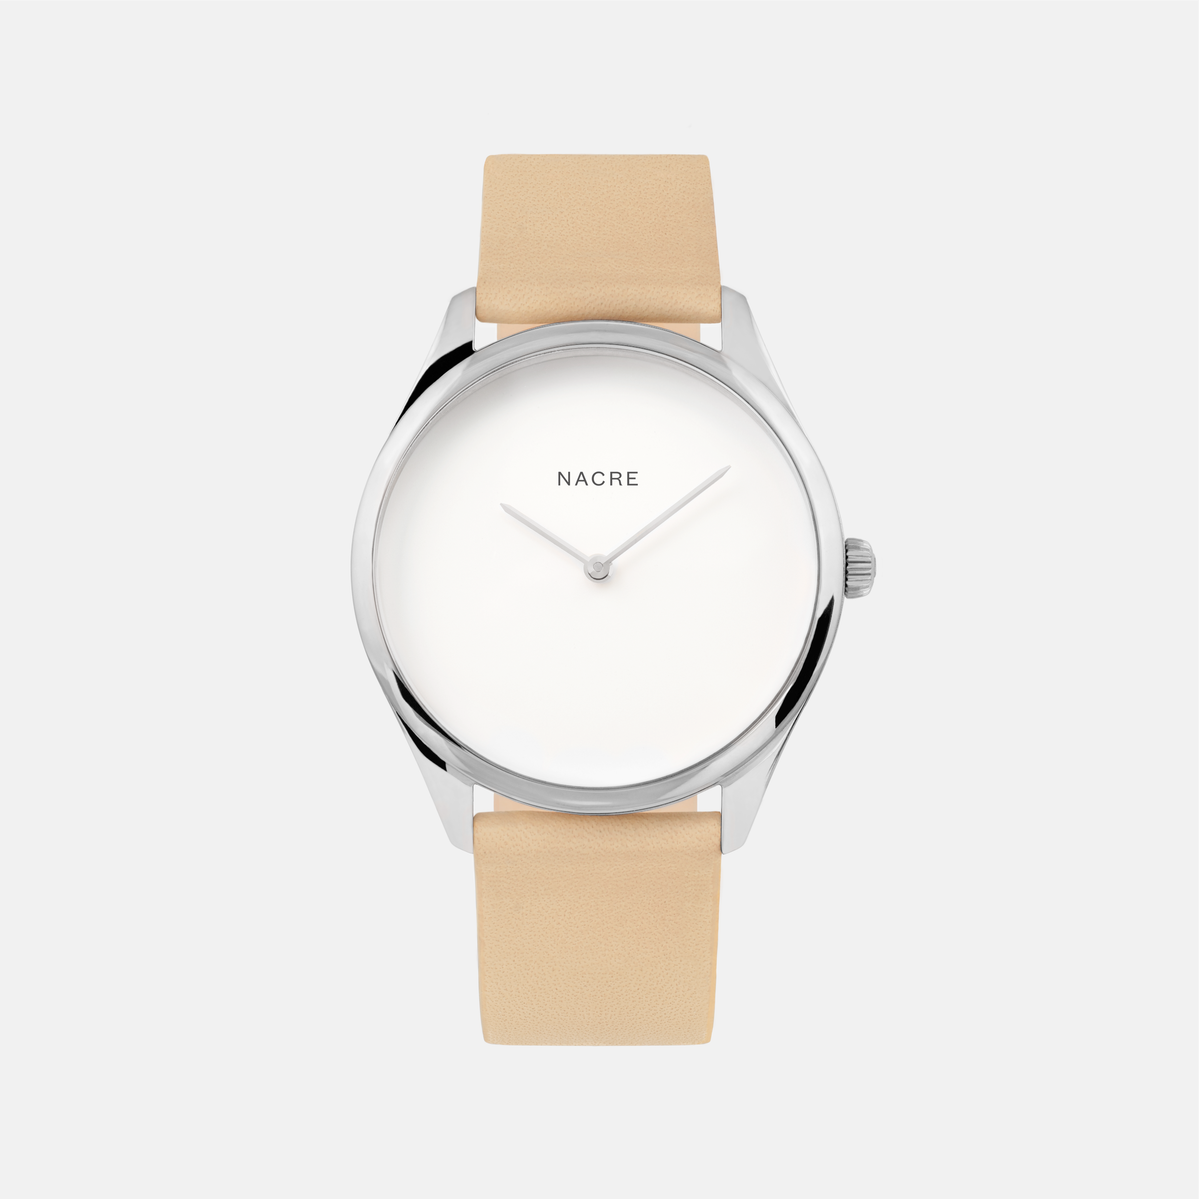 Lune - Stainless Steel - Natural Leather